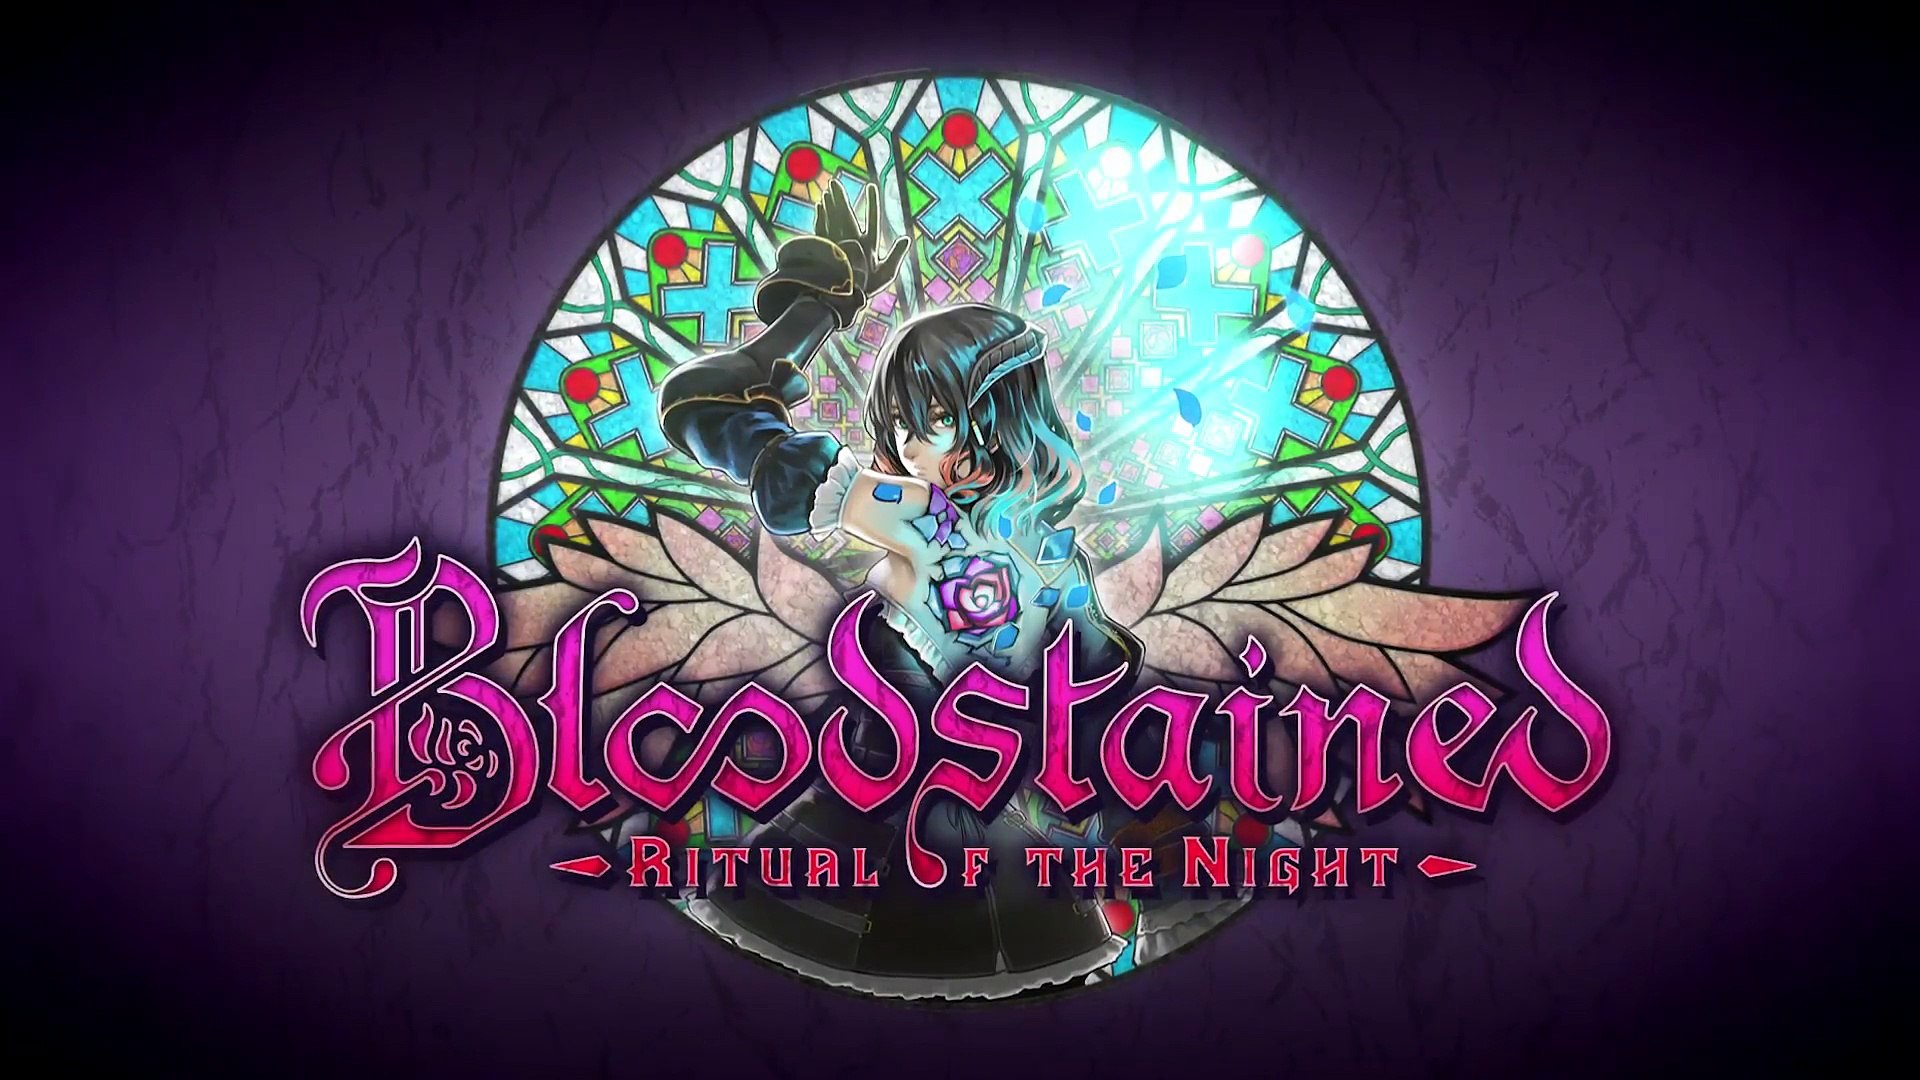 Bloodstaines: Ritual of the night trailer E3 2017